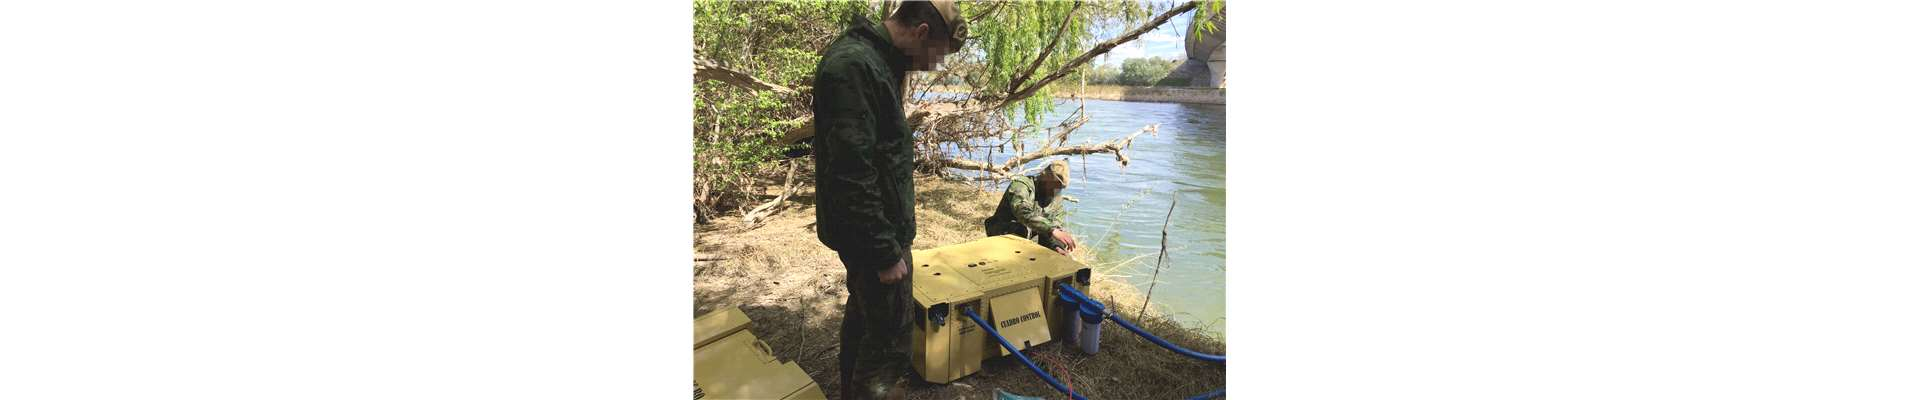 HYDROS Mobile watermaker sustainable river Army